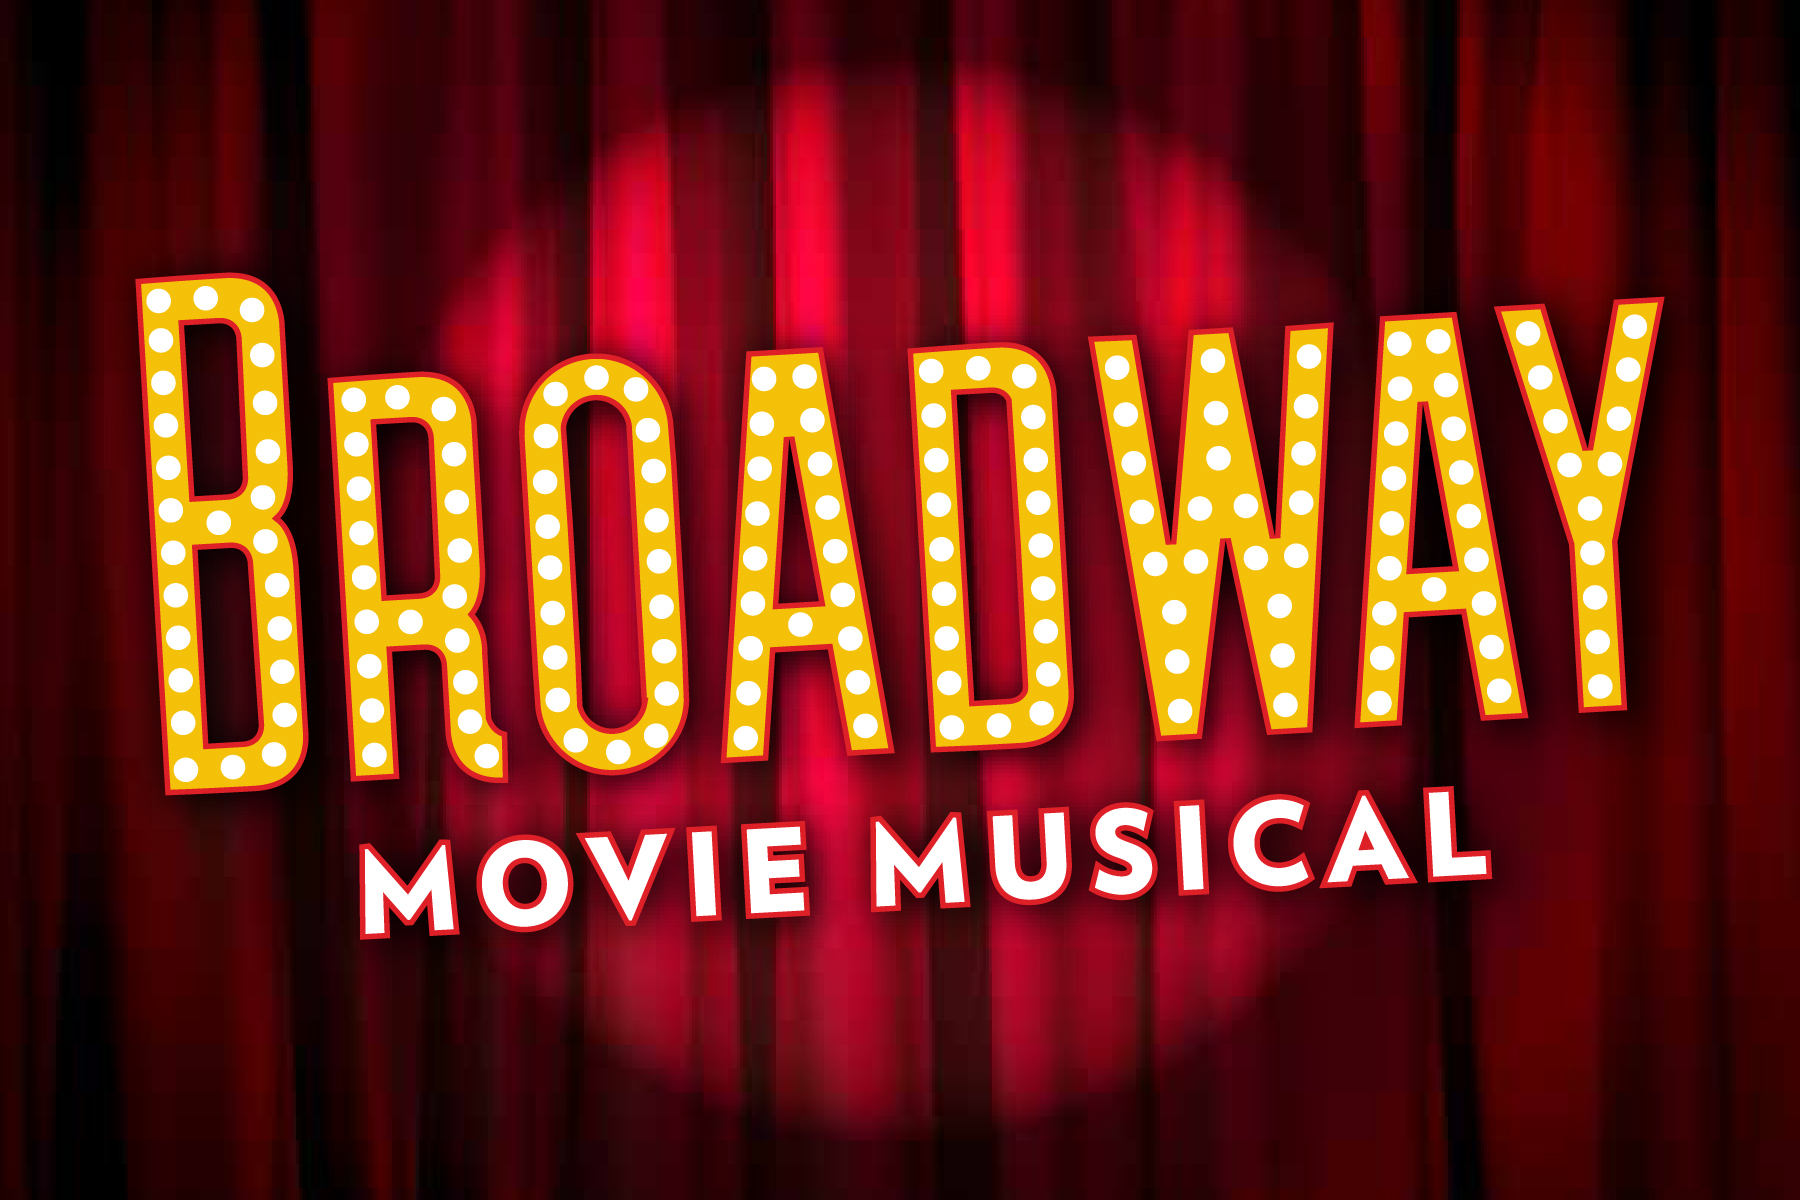 Broadway Musical Logos - Bing images